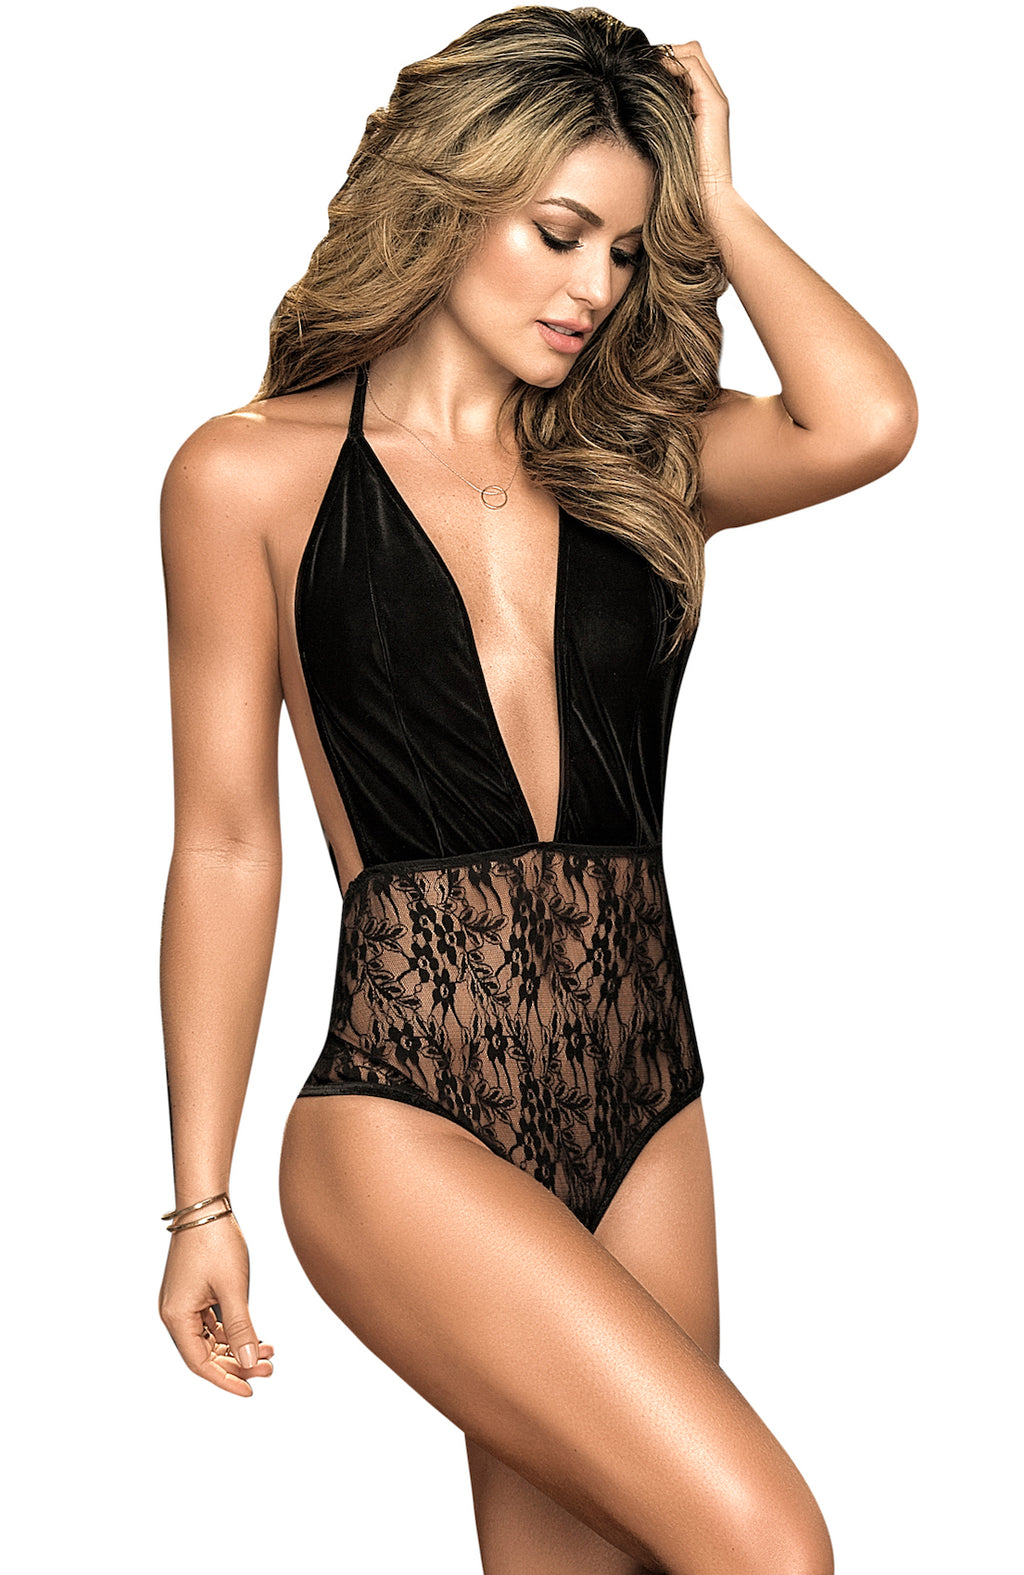 Mapale Contrast Velvet And Lace Teddy-new tempt-Small / Medium-Black-Bouji Lingerie